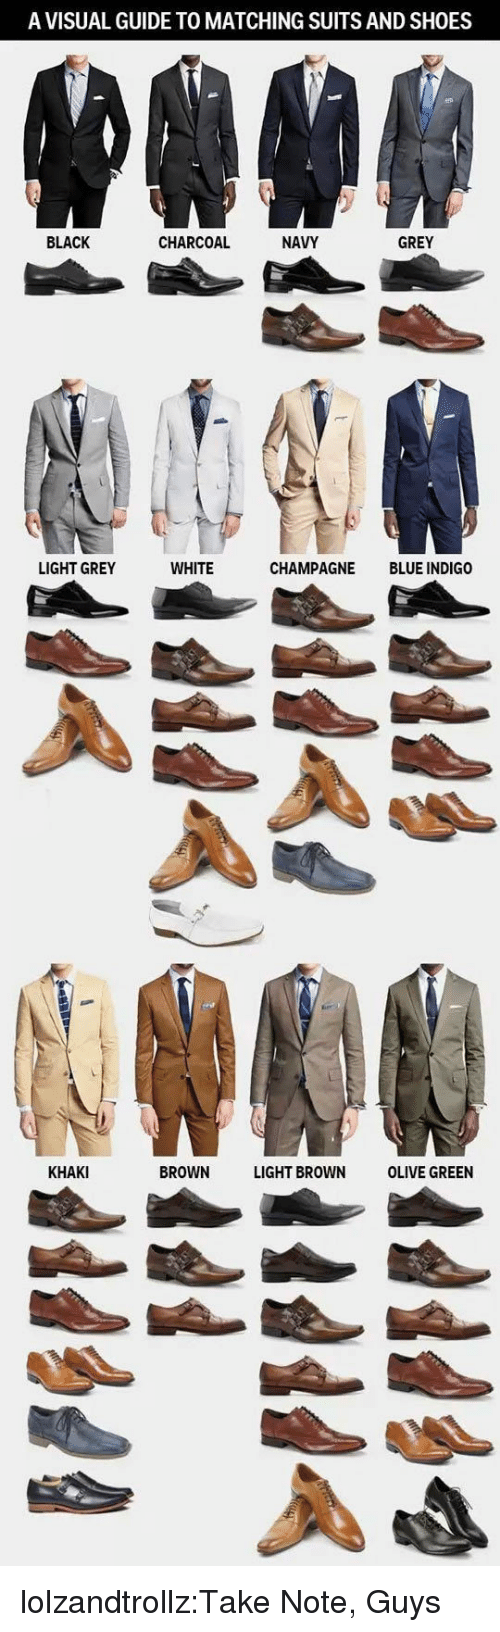 Champagne: A VISUAL GUIDE TO MATCHING SUITS AND SHOES  BLACK  CHARCOAL  NAVY  GREY  LIGHT GREY  WHITE  CHAMPAGNE BLUE INDIGO  KHAKI  BROWN LIGHT BROWN OLIVE GREEN lolzandtrollz:Take Note, Guys